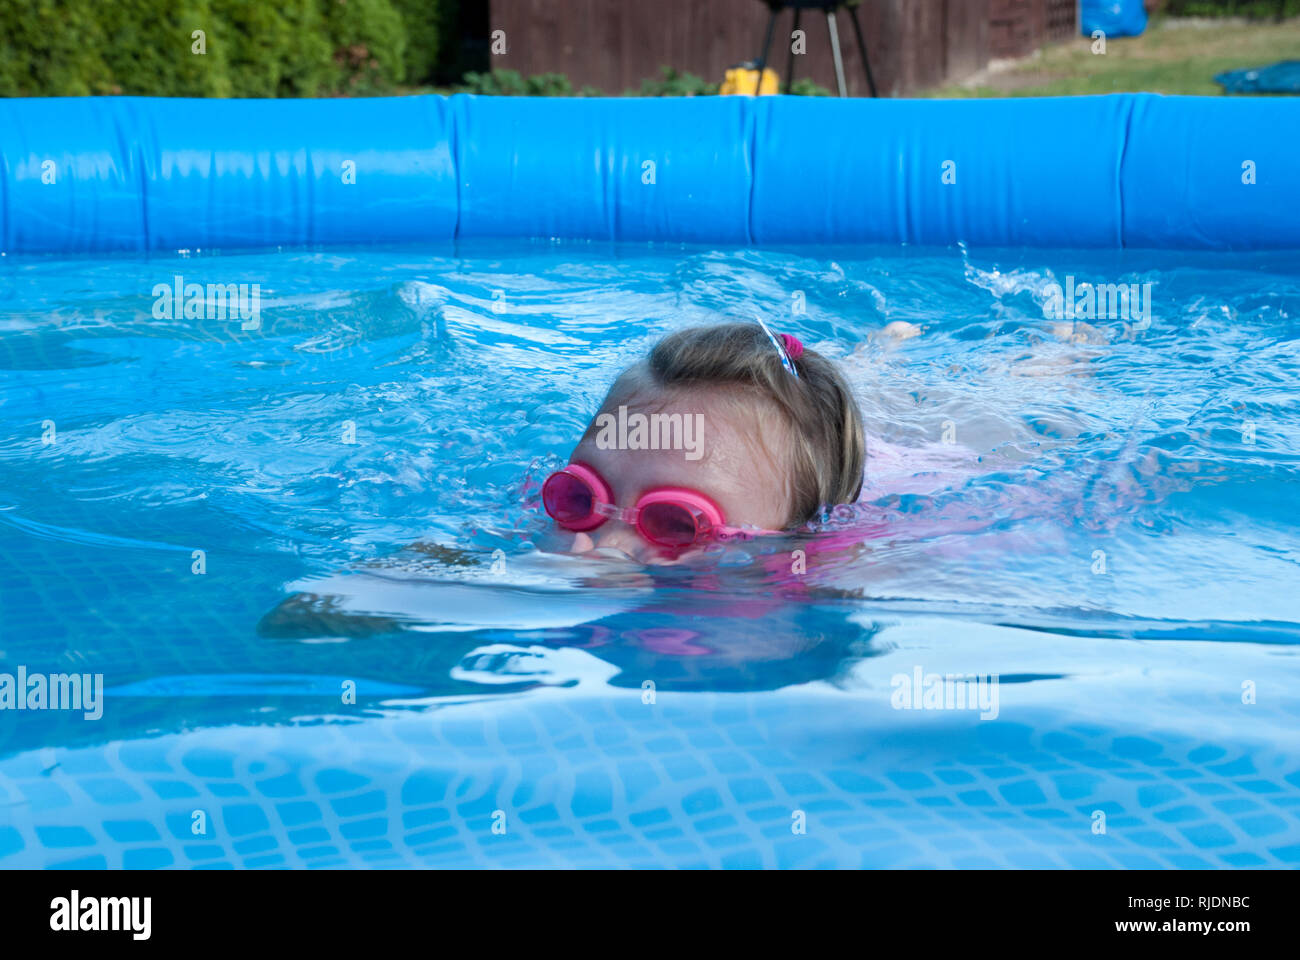 A young courageous swimmer dives in a garden pool. It's a hot summer afternoon. - Stock Image